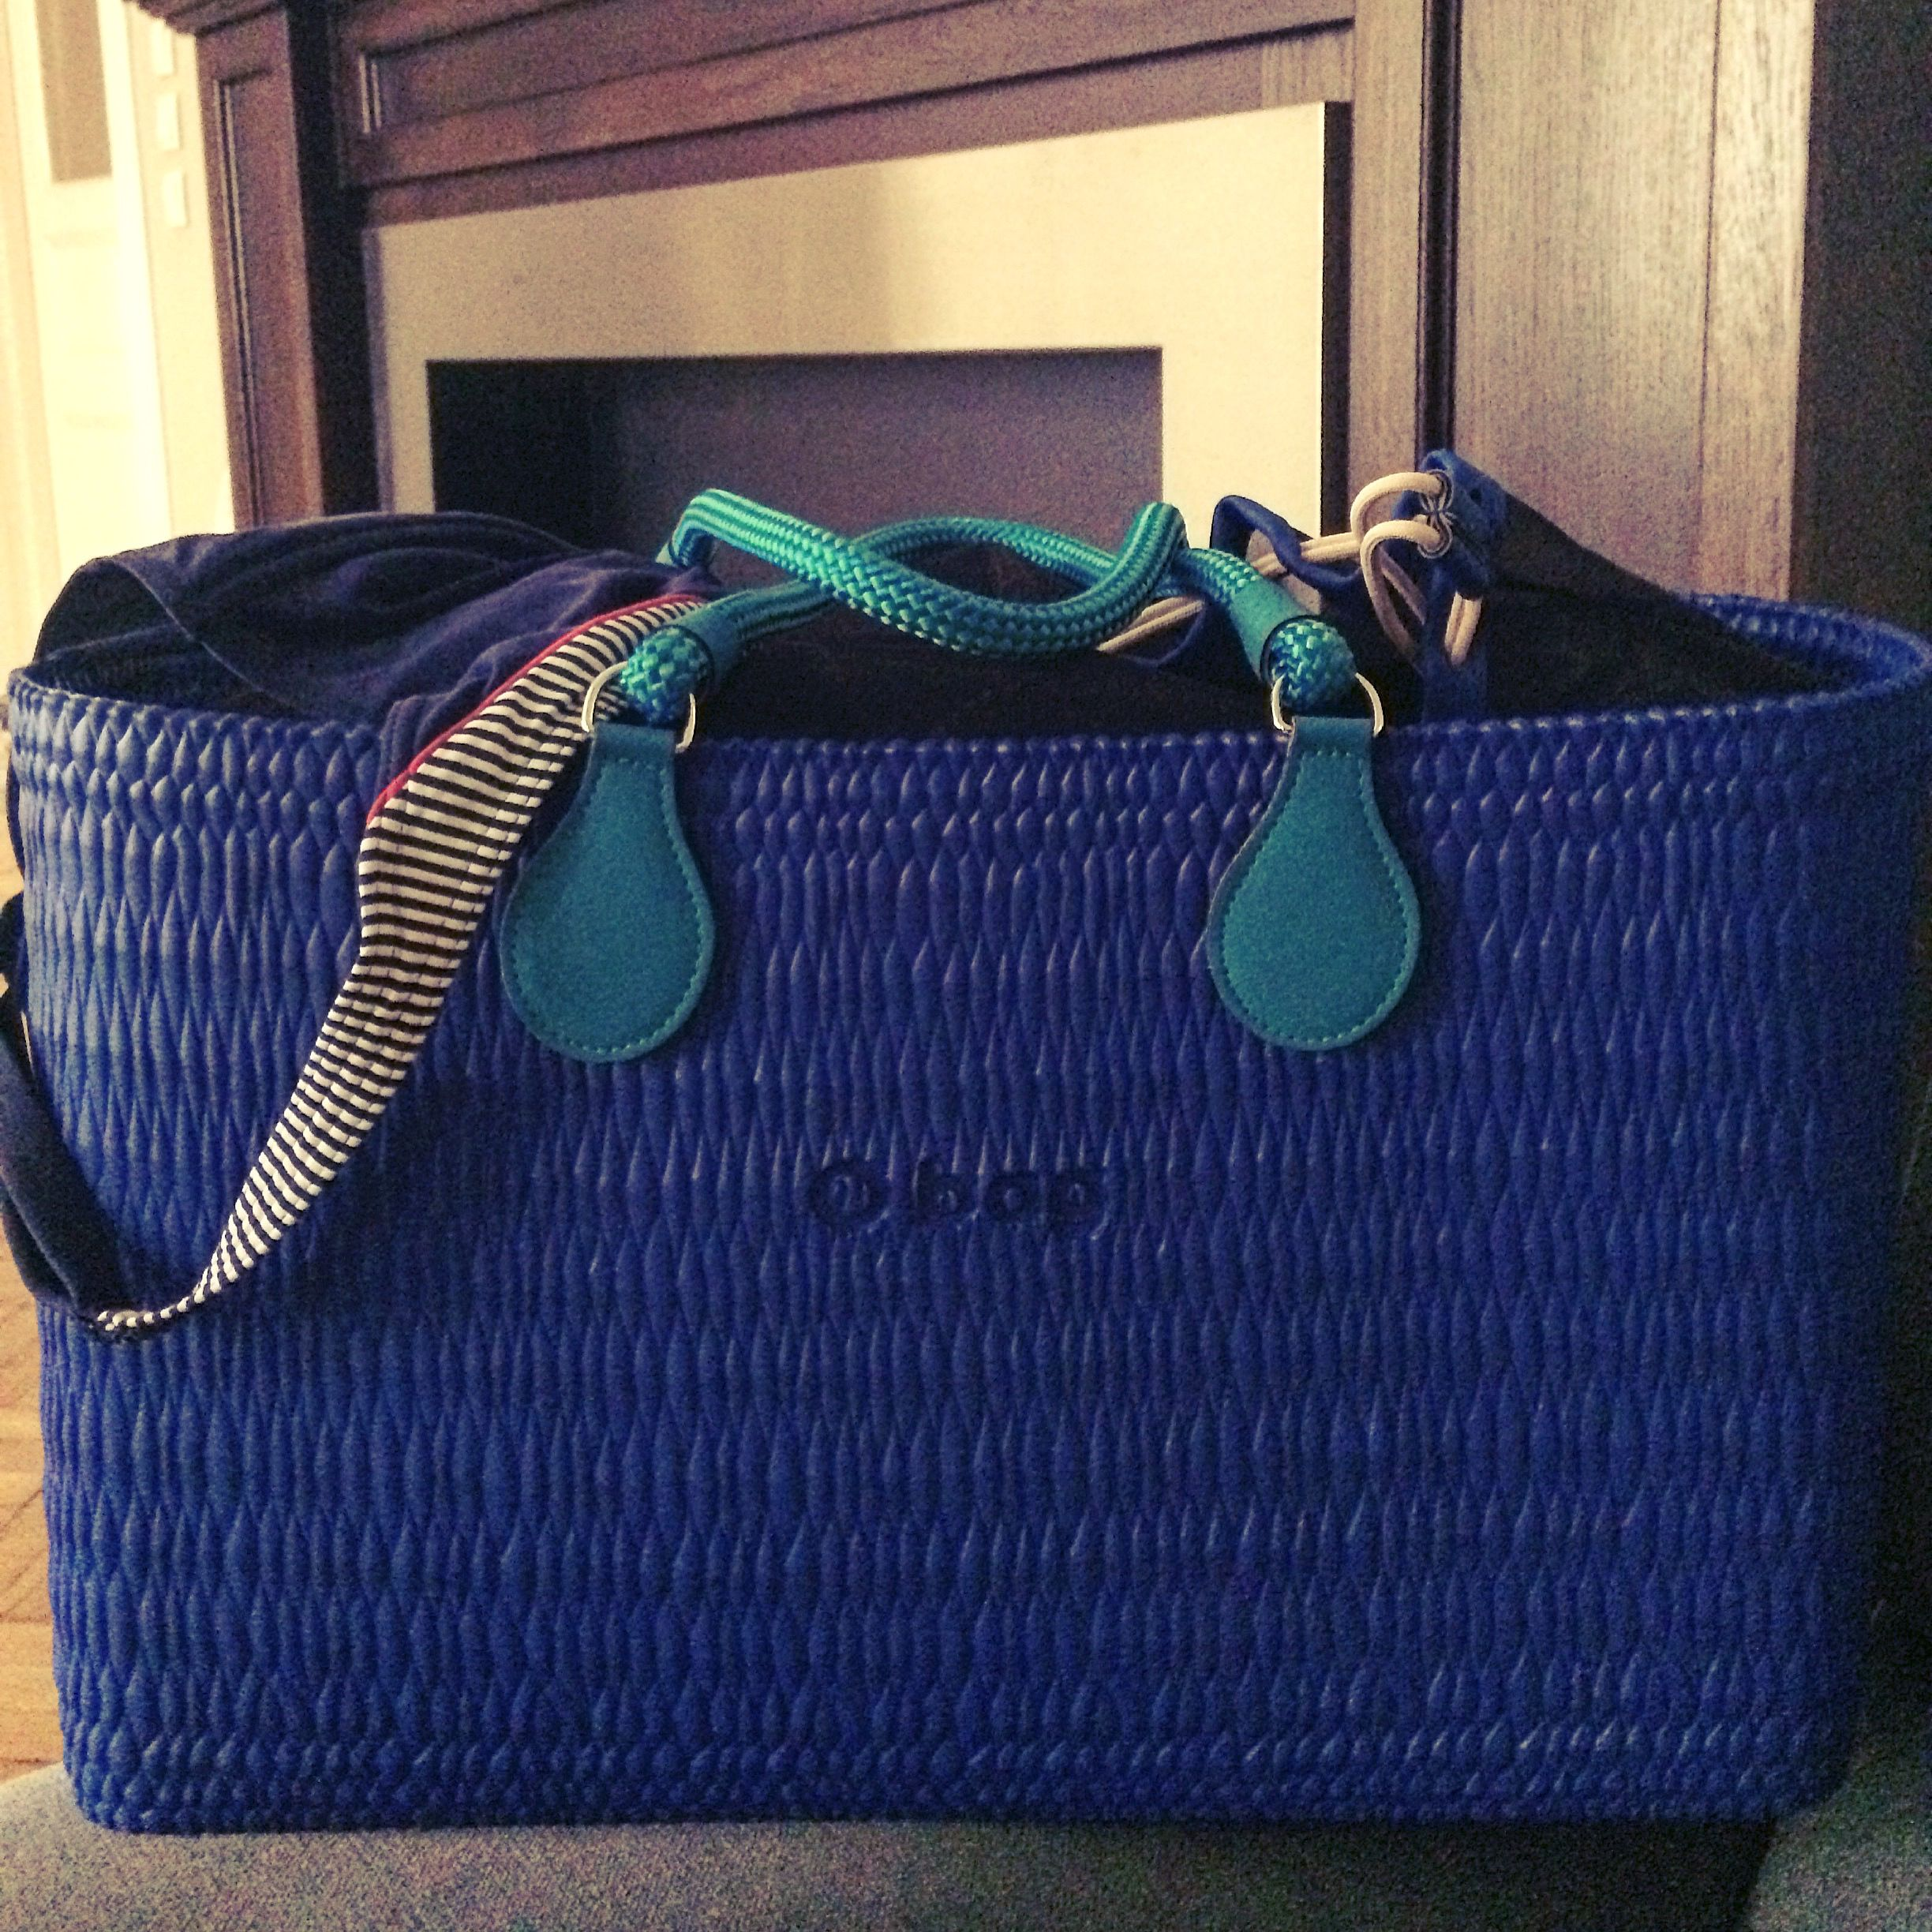 O bag beach ACQUA for a summer fun, easy to wear, fun to travel, funky to  the beach #obag #bagforthesummer #summerbag #obagacqua #acqua #obagbudapest  # ...